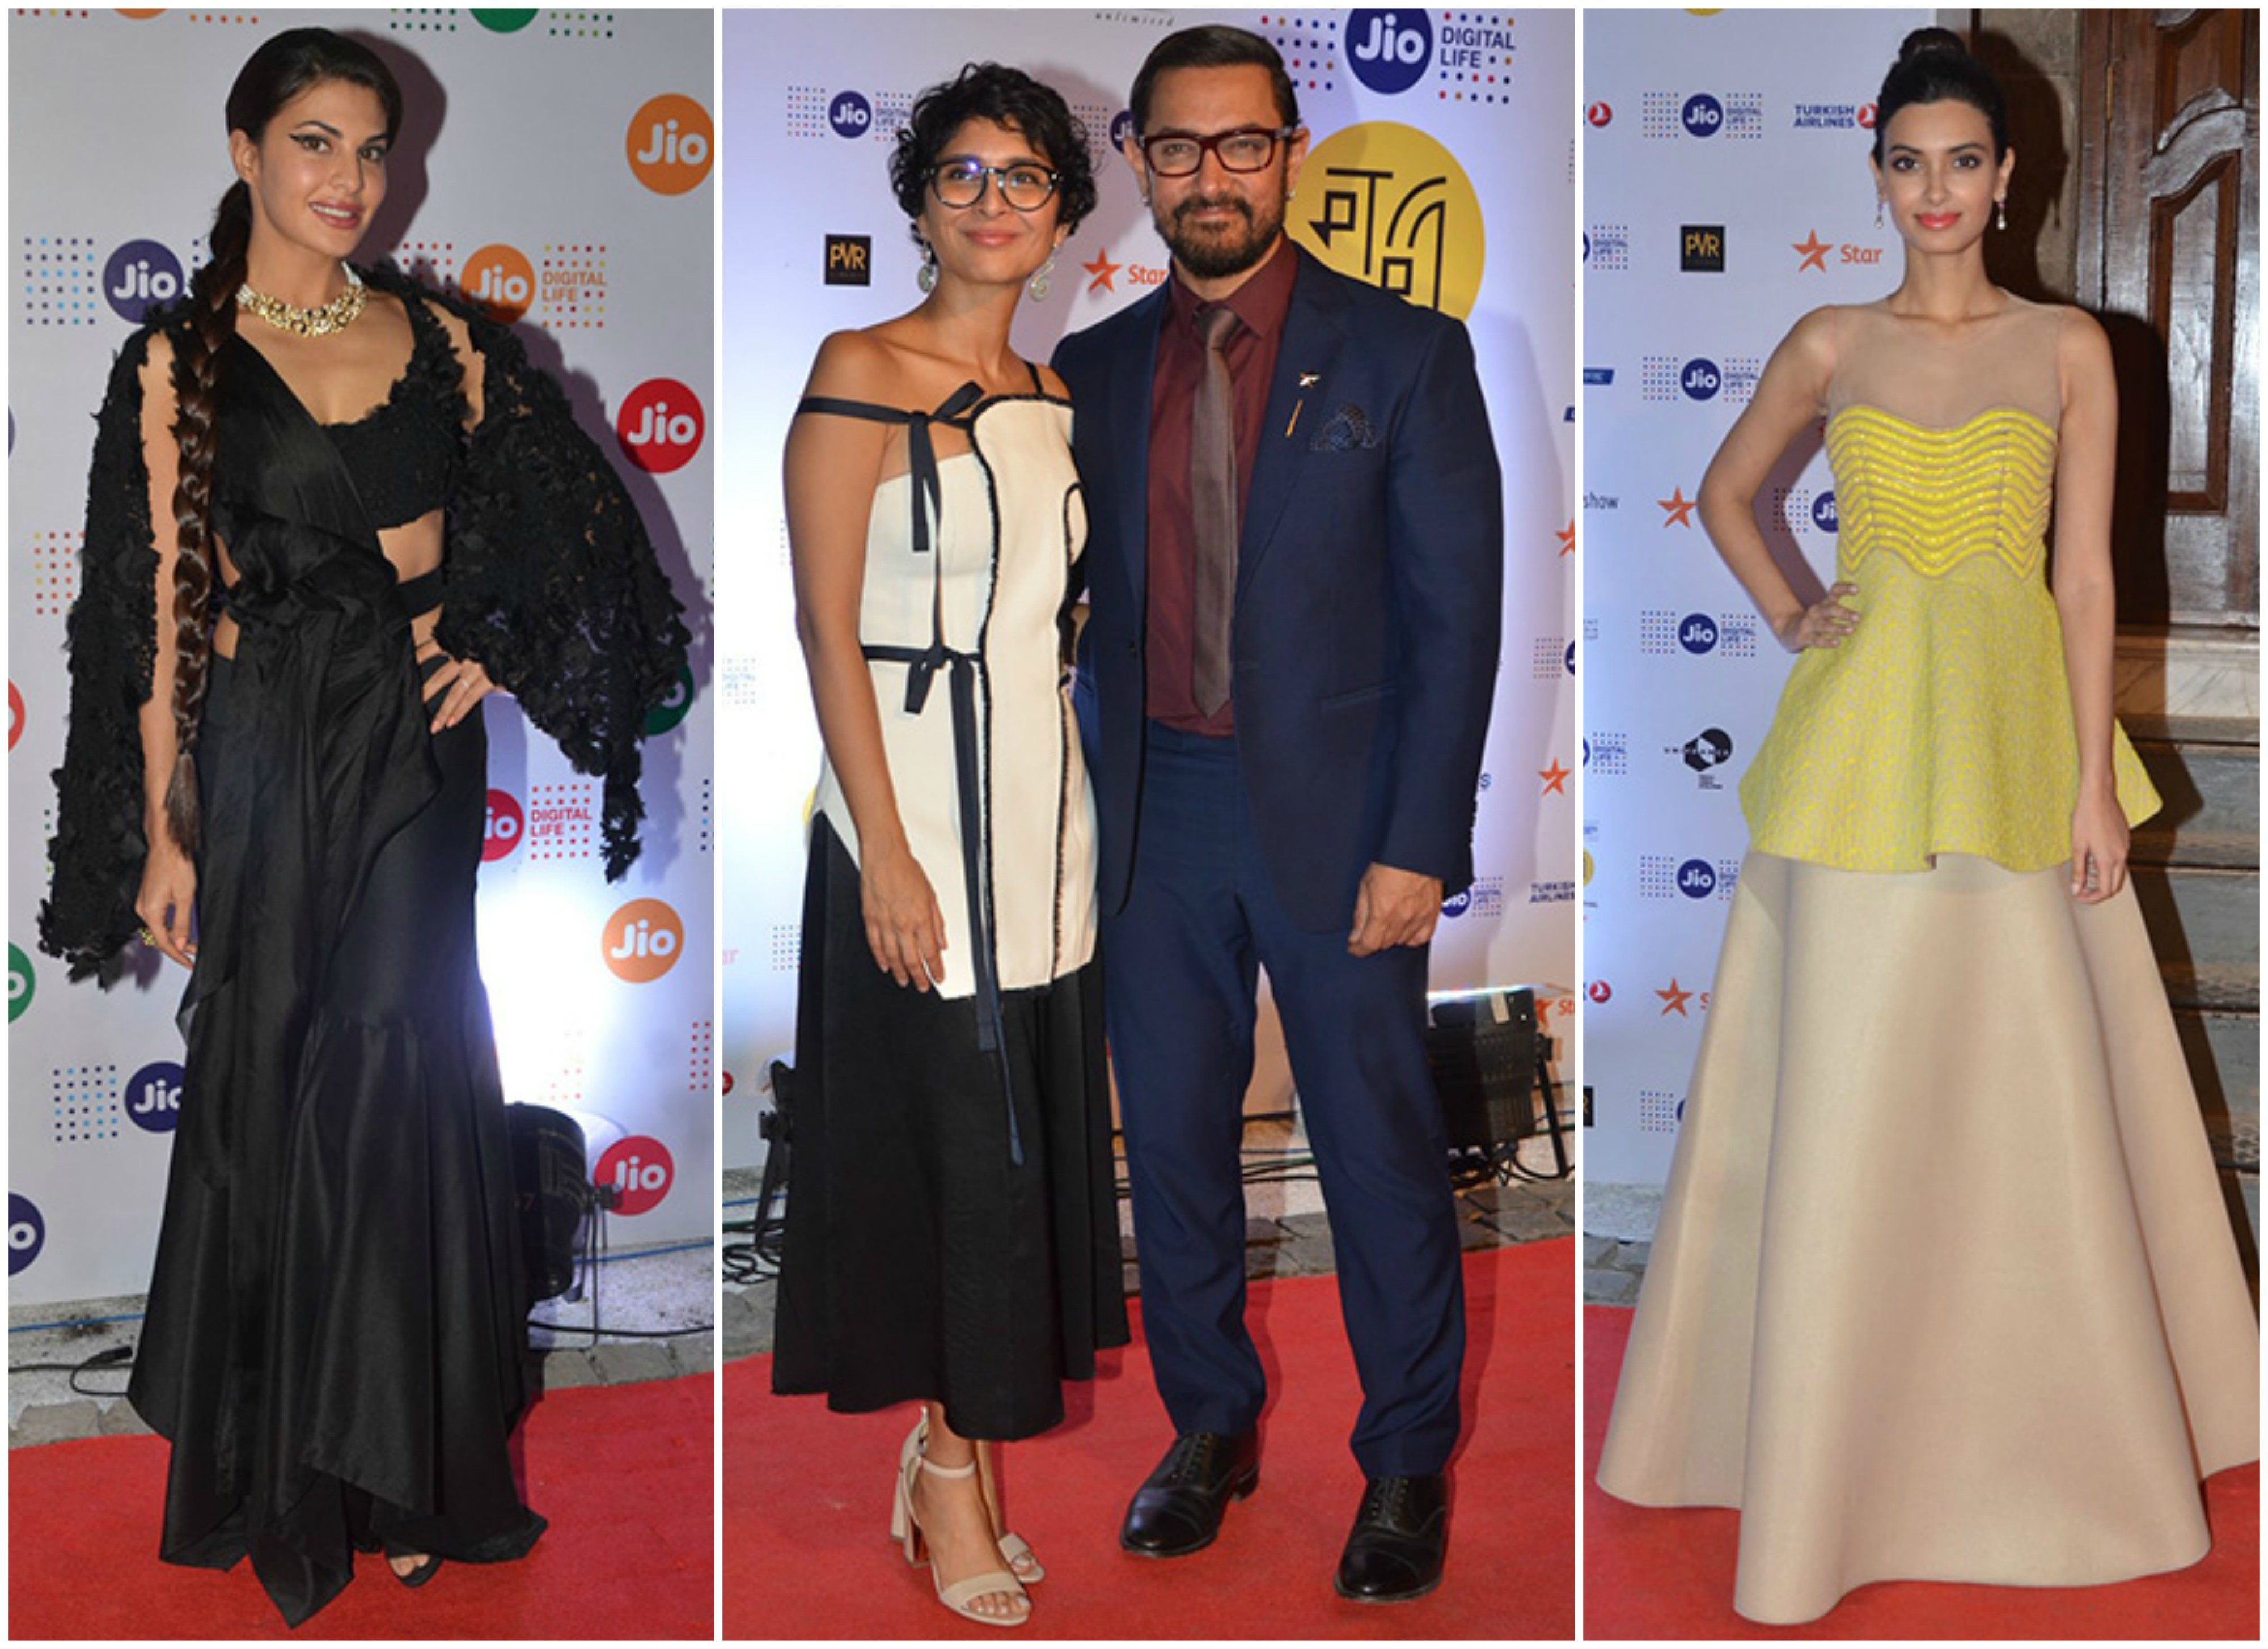 Pics you don't want to miss from MAMI Film Festival's Opening ceremony!